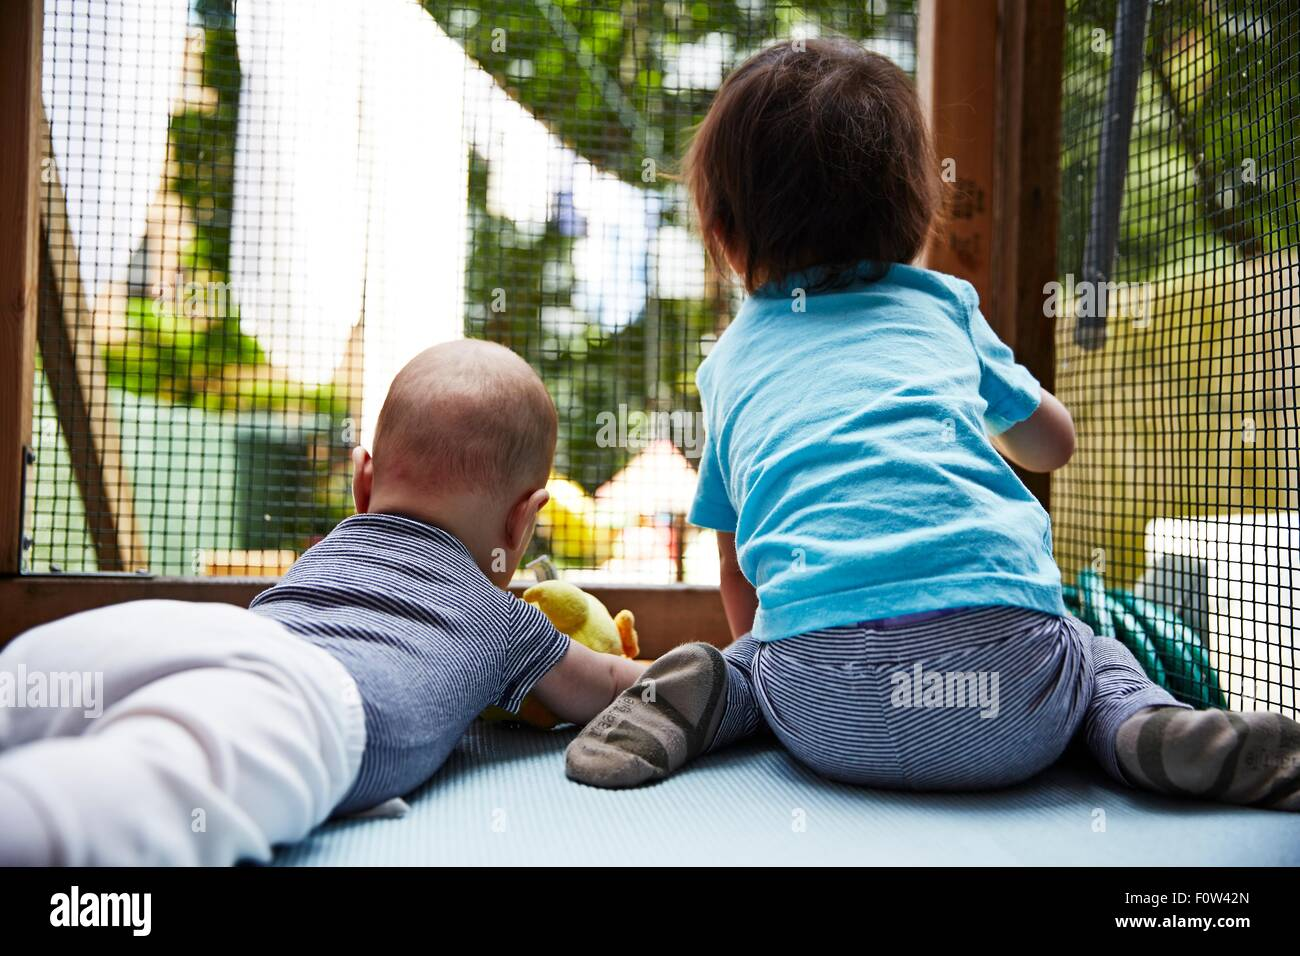 Brothers playing inside playpen - Stock Image